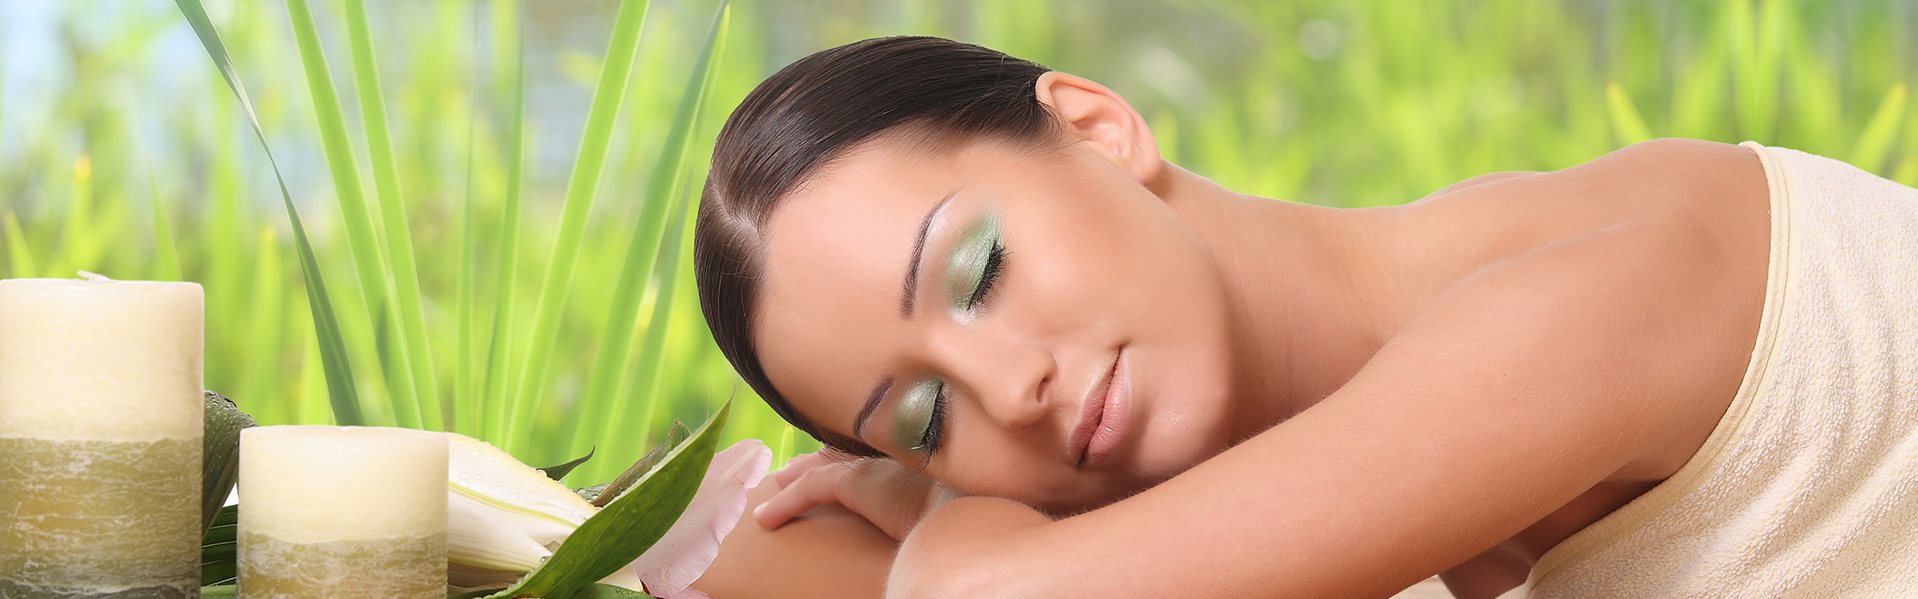 Serenity Day Spa Appointments